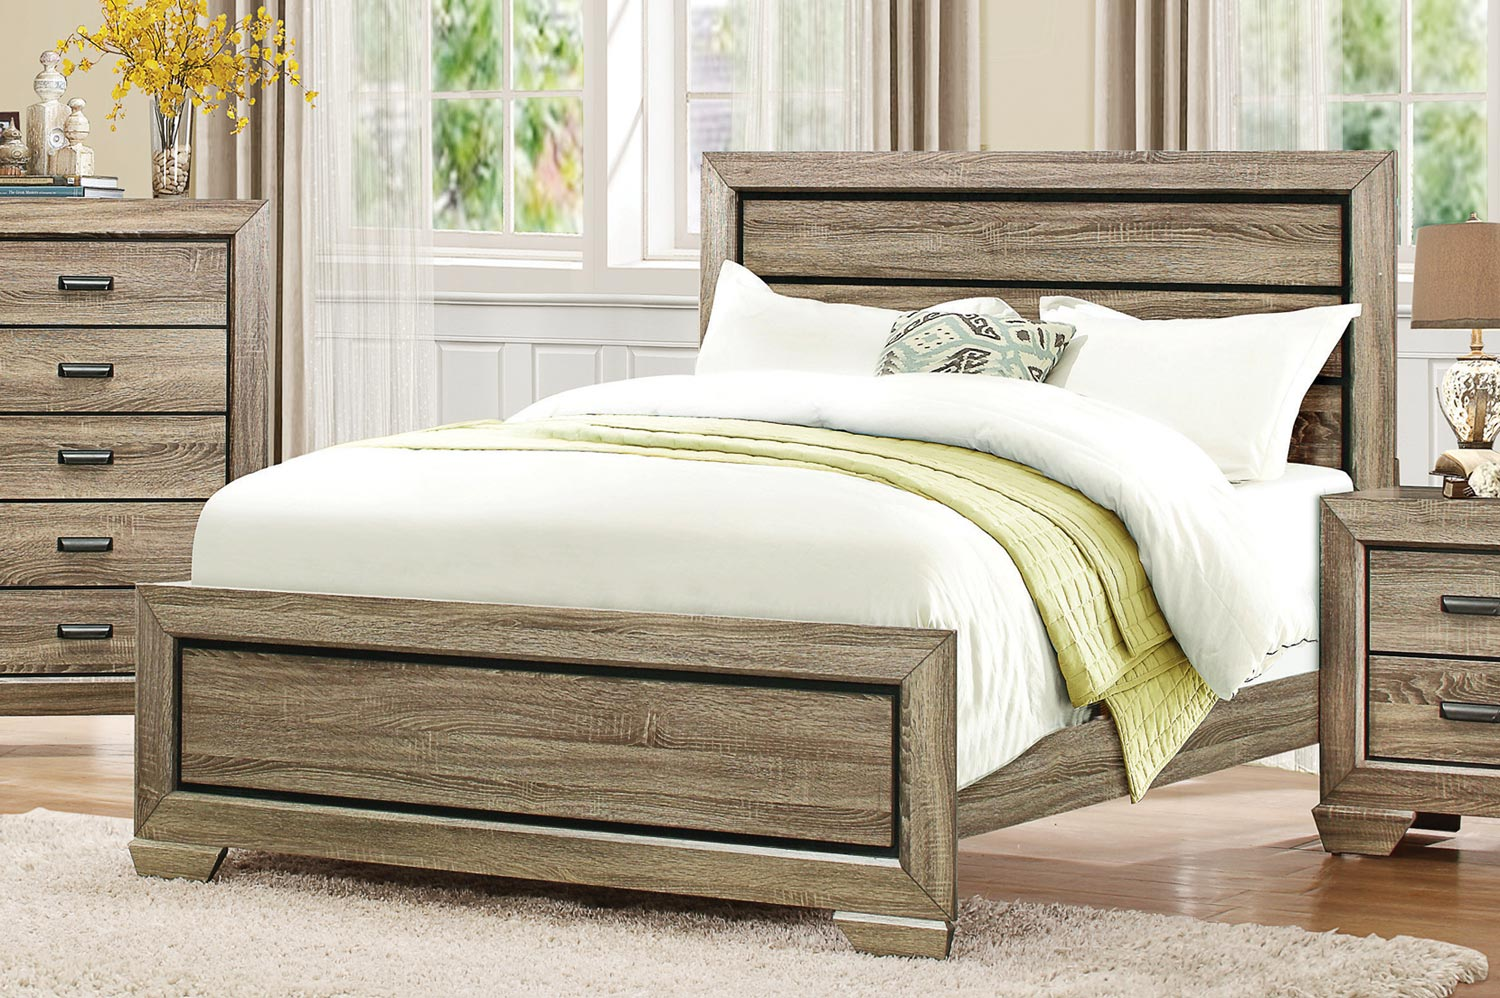 Homelegance Beechnut Panel Bed - Light Elm